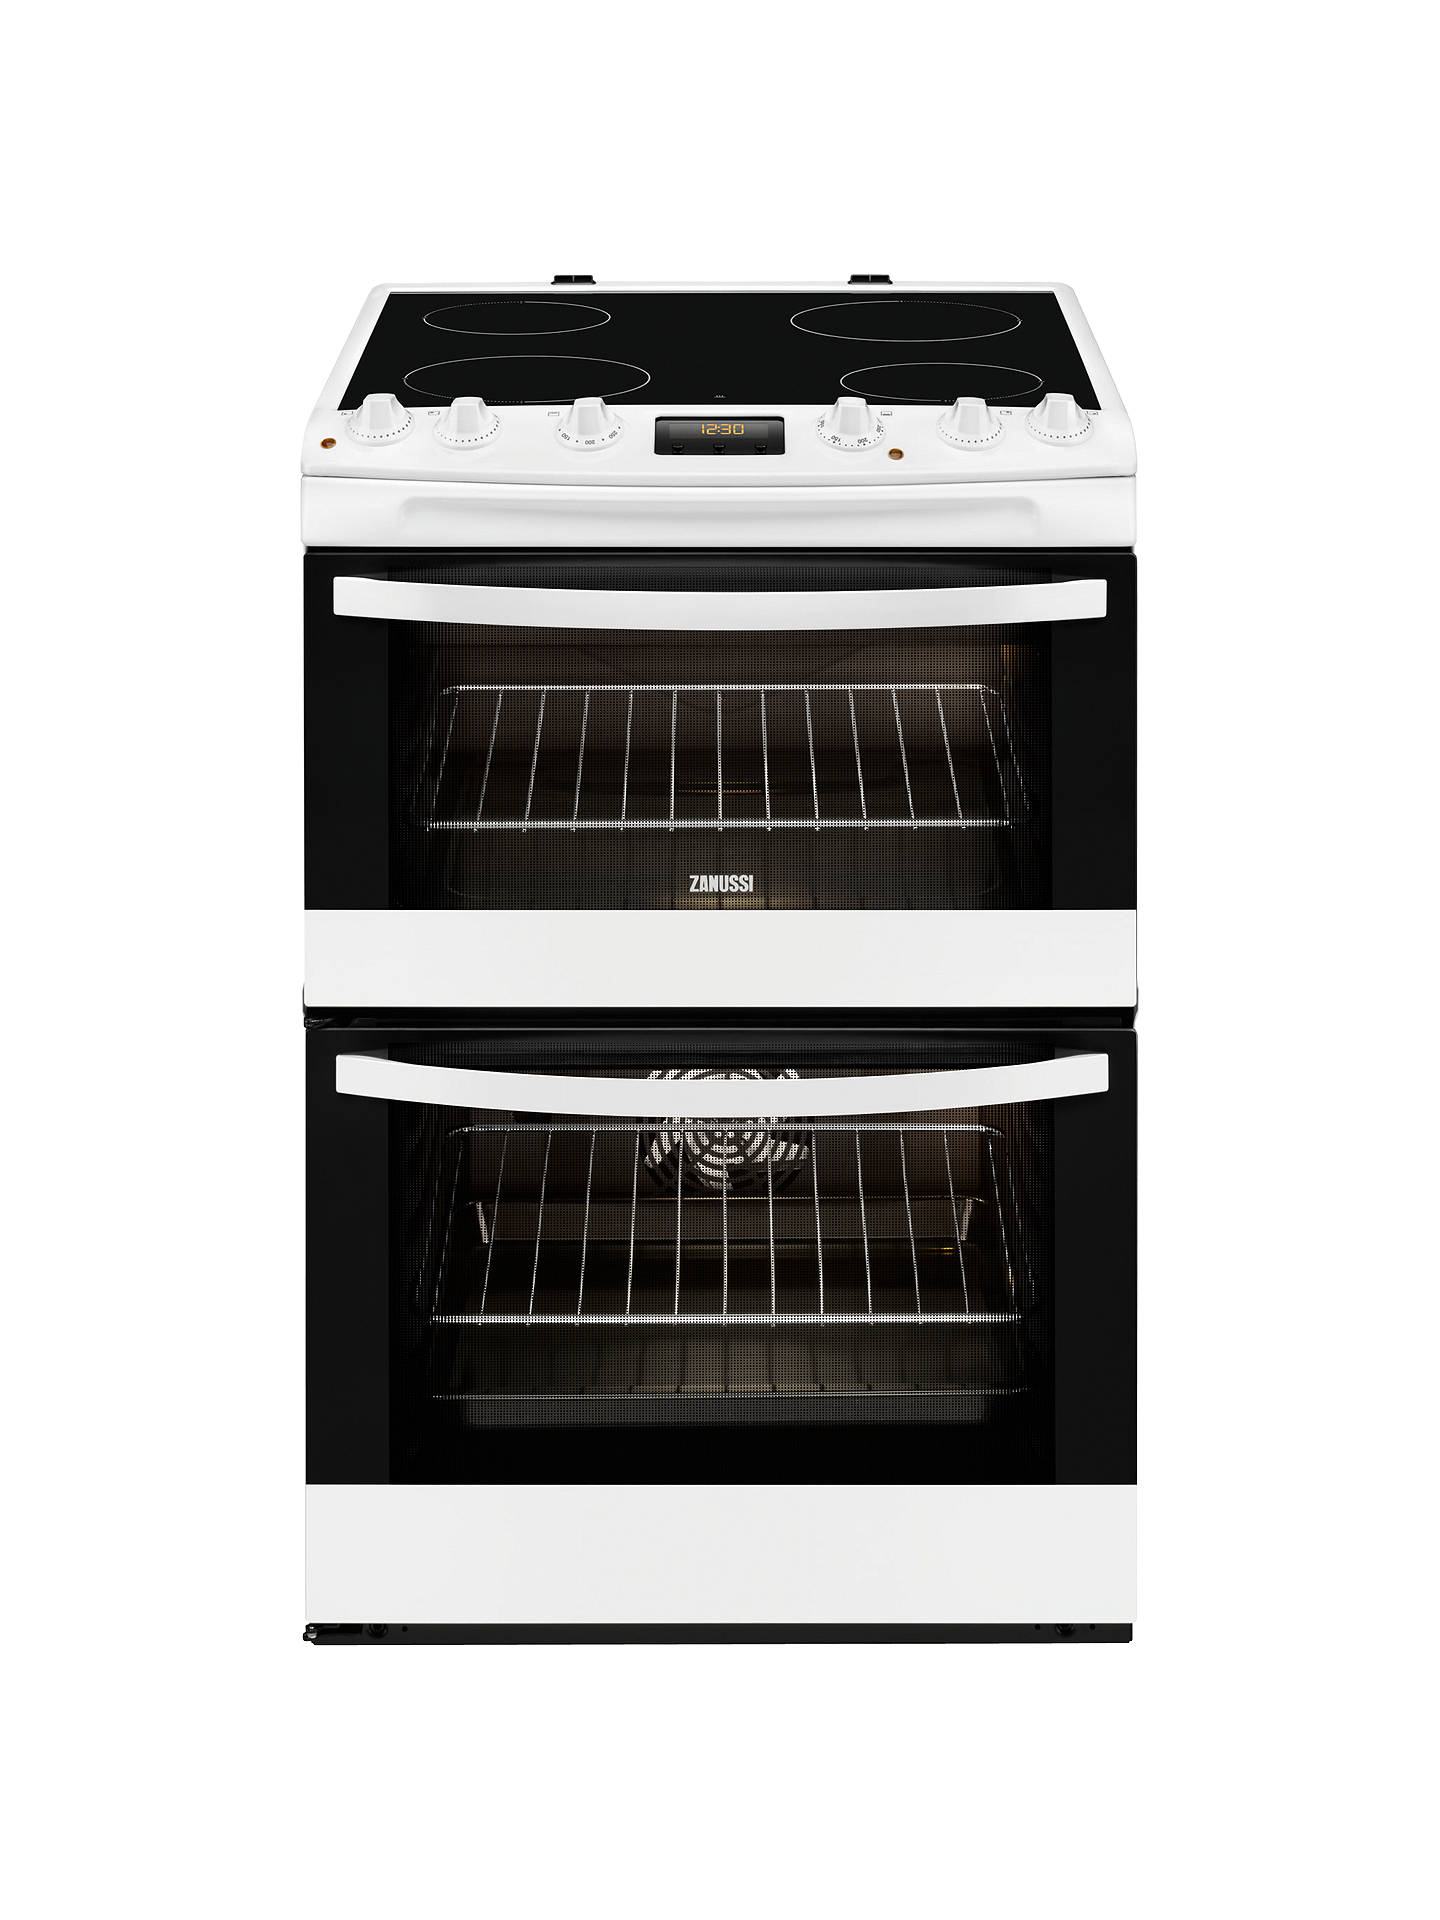 BuyZanussi ZCV68300WA Electric Cooker, White Online at johnlewis.com